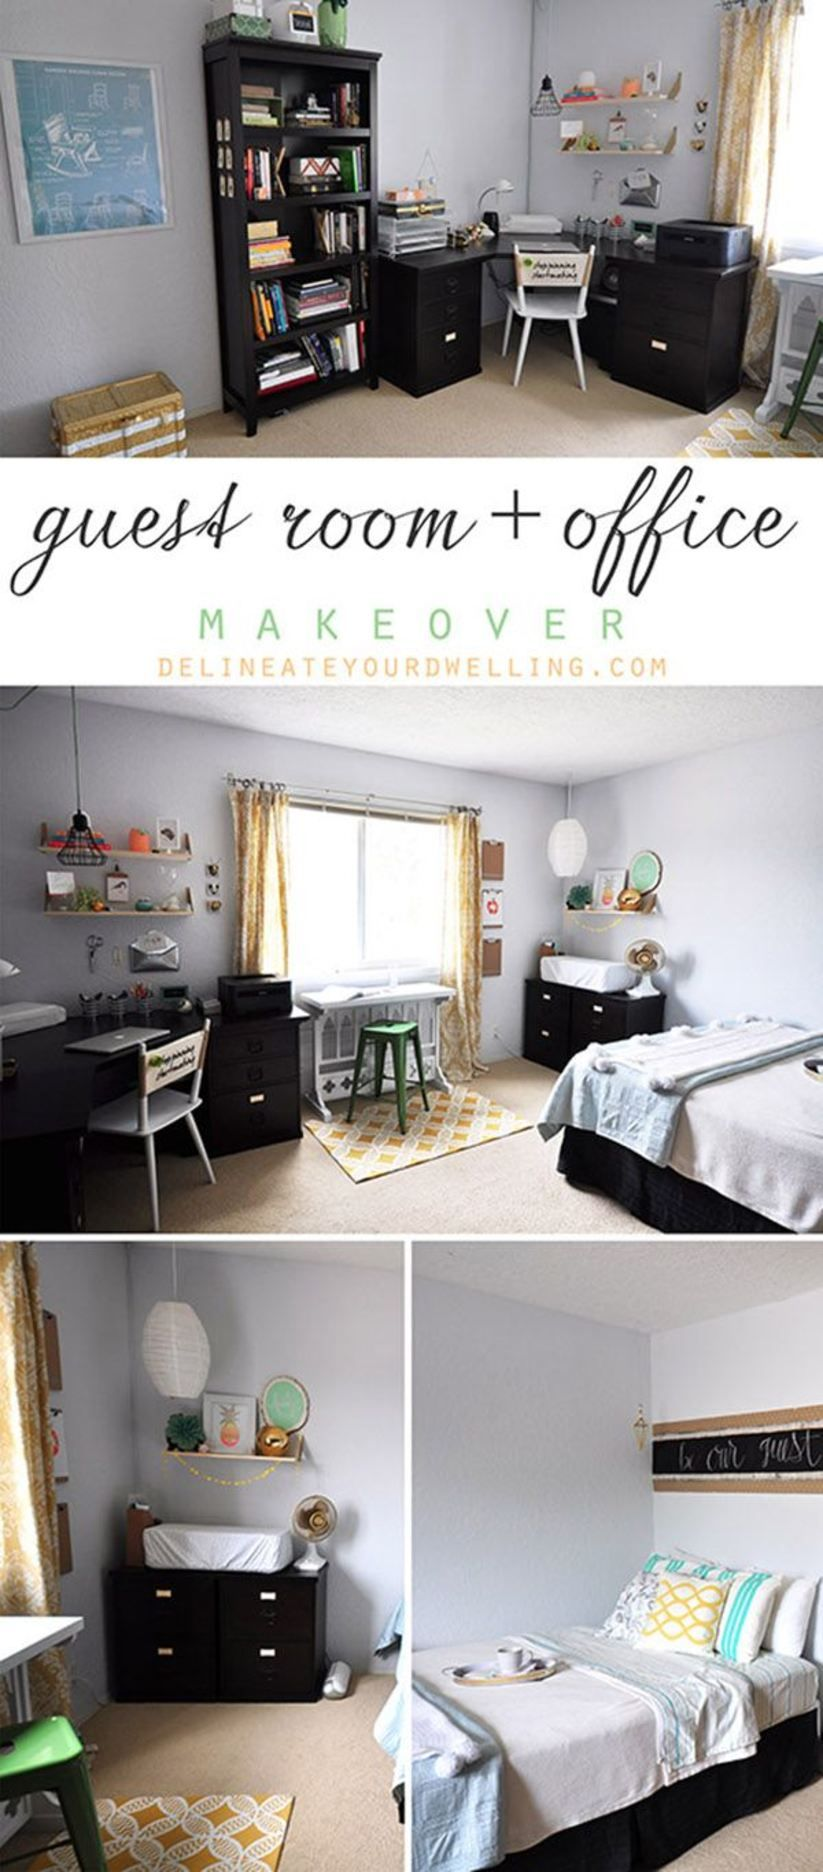 Guest Room + Office Makeover Reveal, Overview